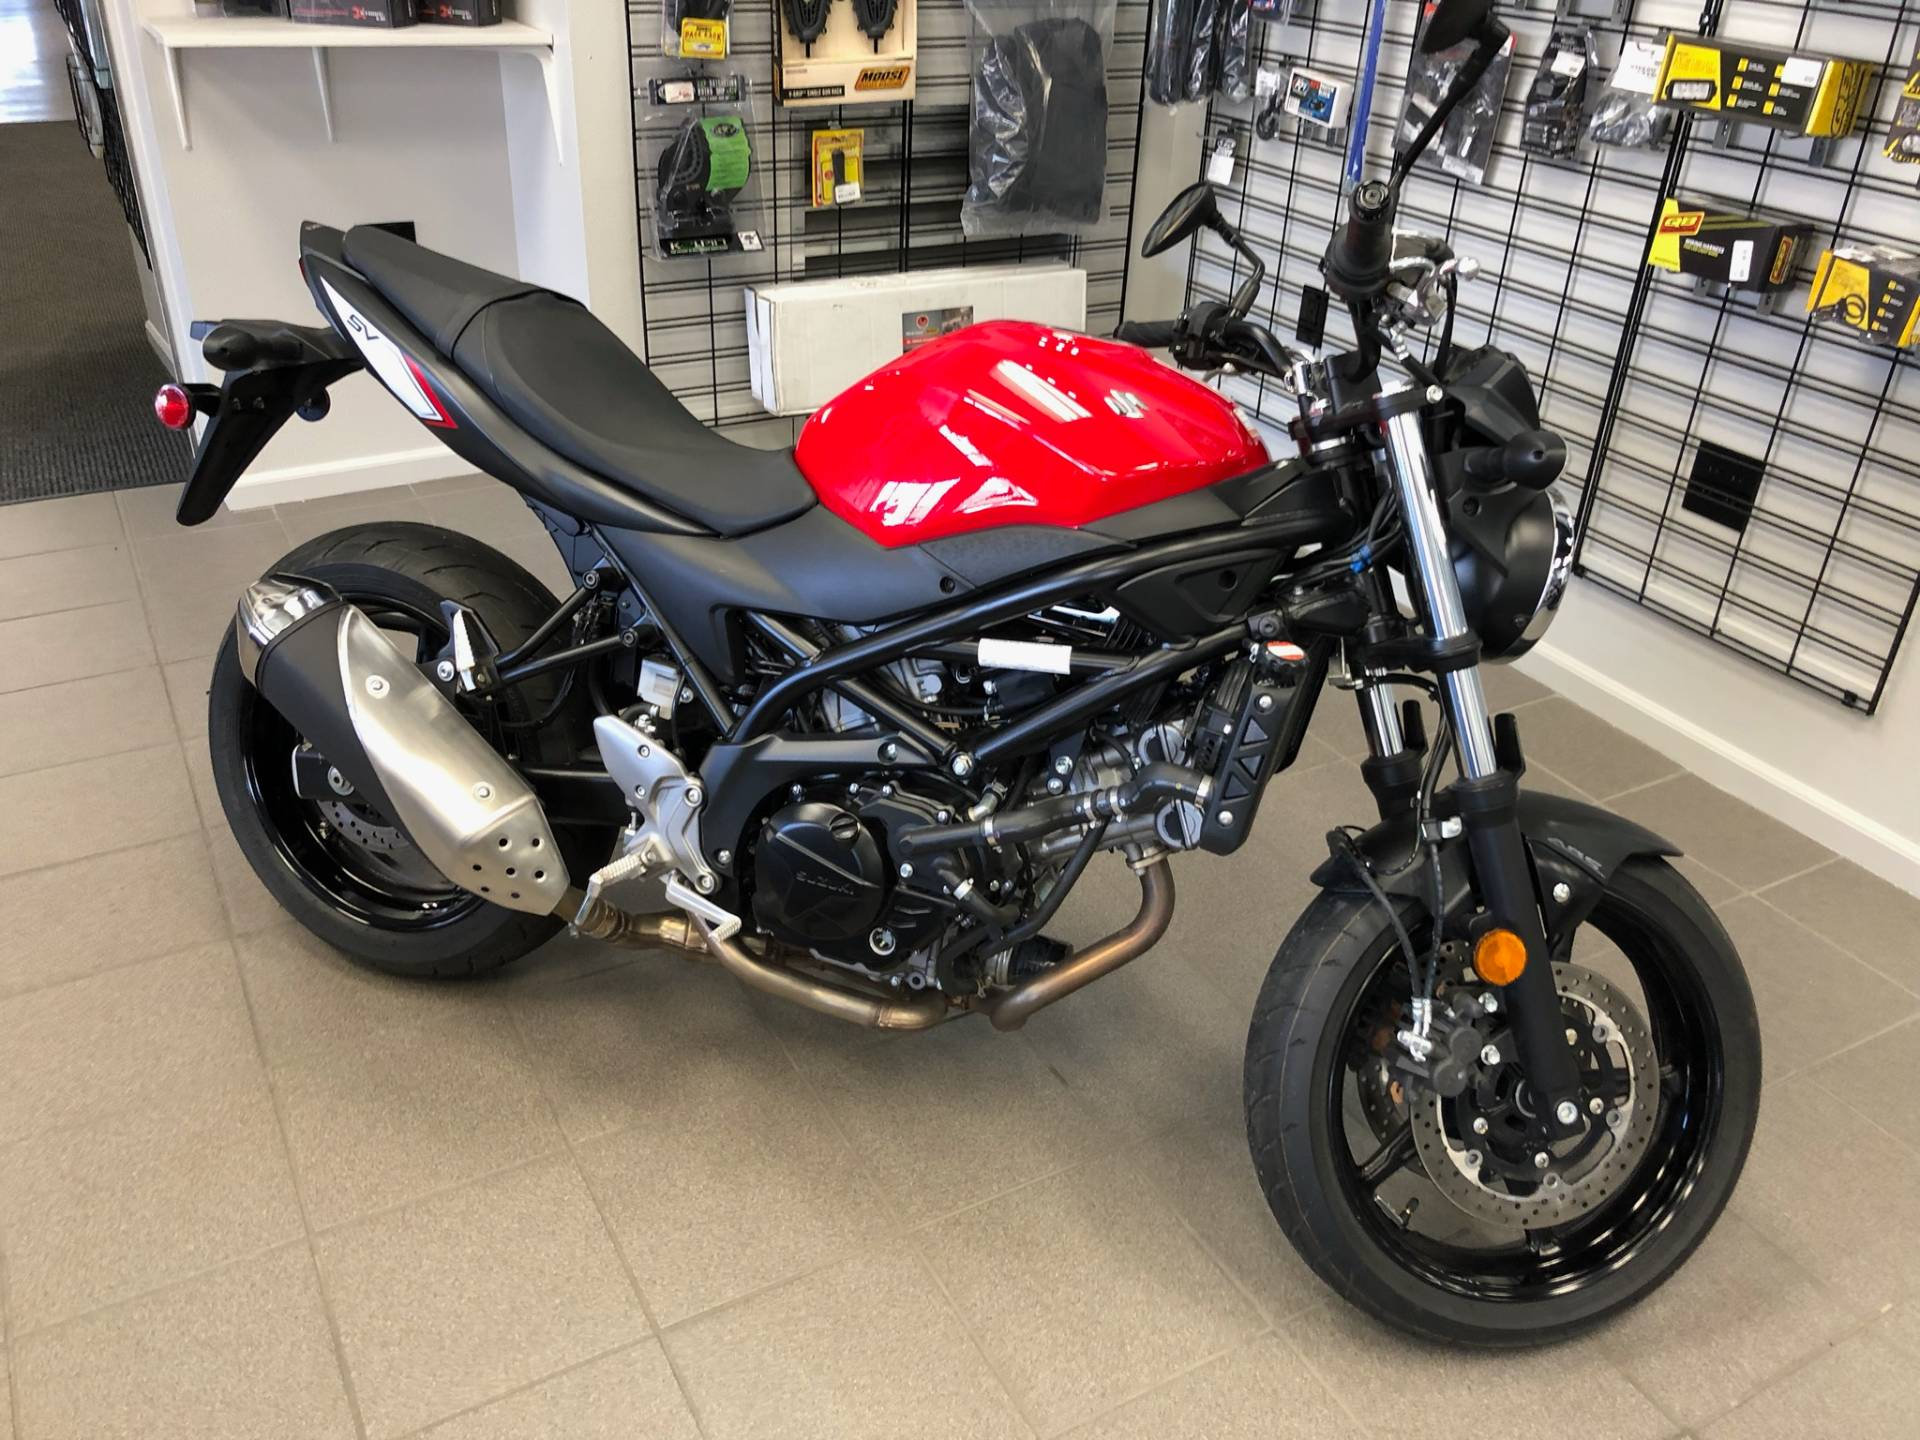 2017 Suzuki SV650 for sale 57652